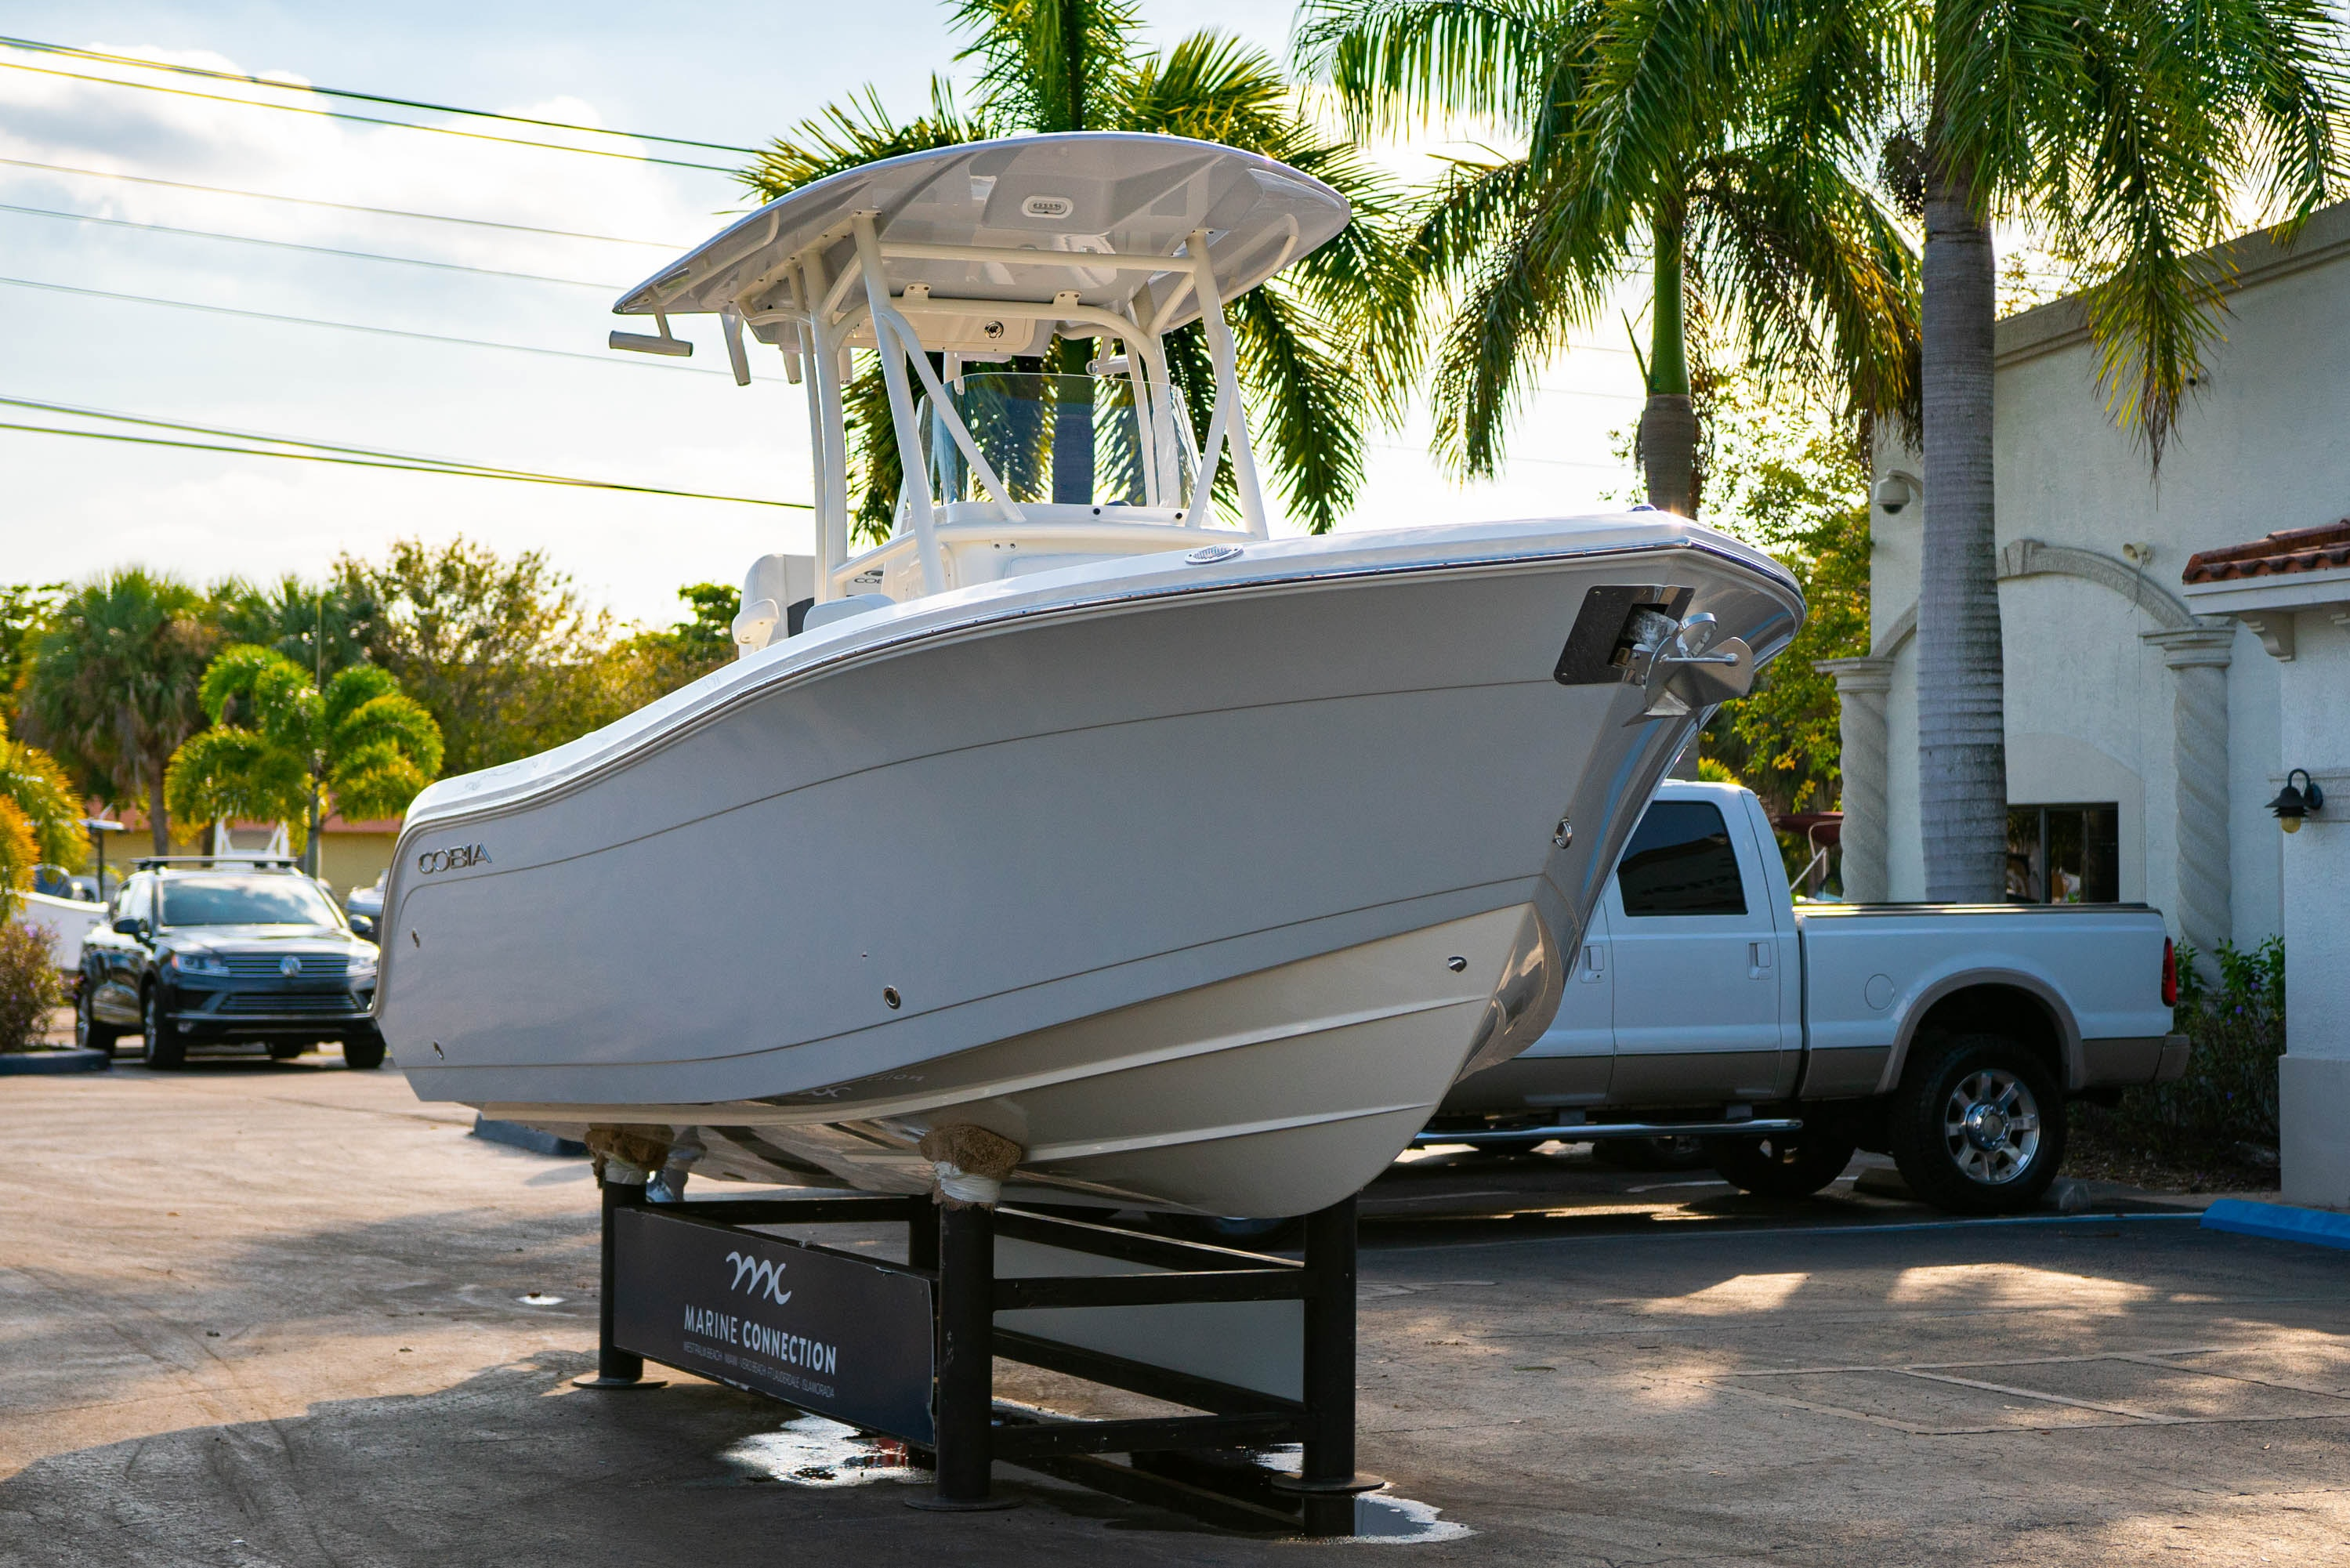 Thumbnail 1 for New 2020 Cobia 220 CC boat for sale in West Palm Beach, FL